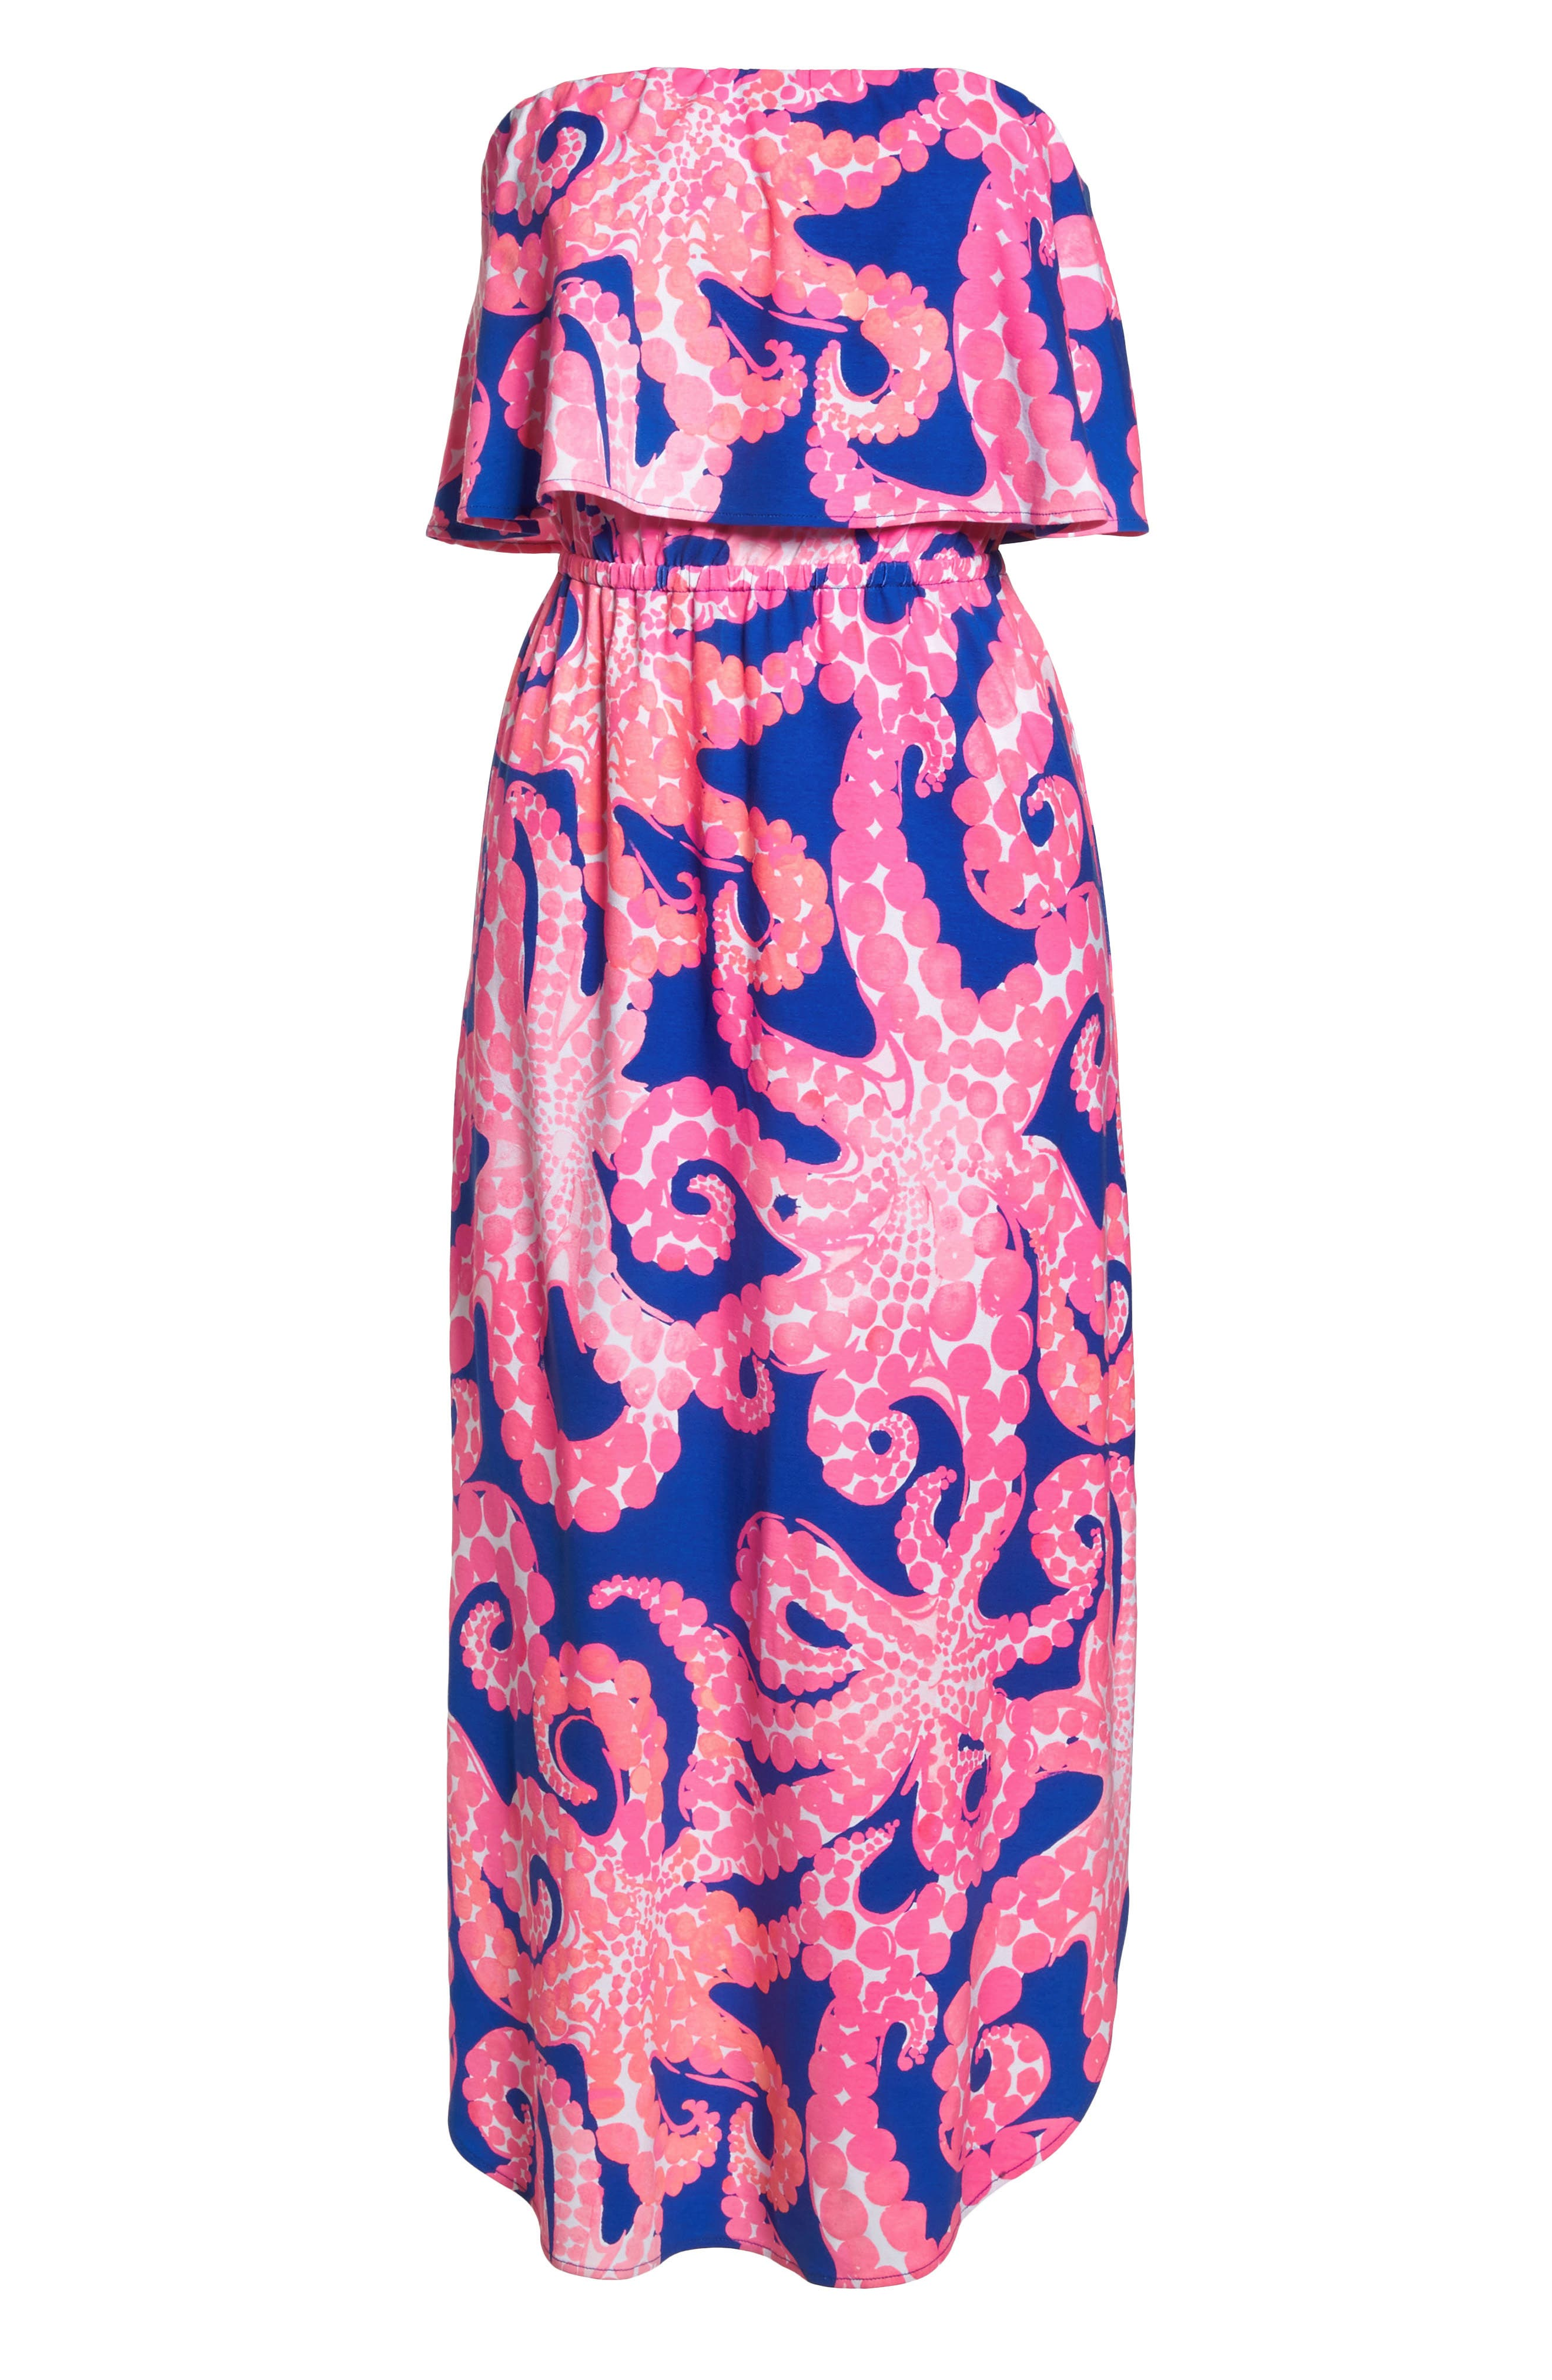 Meridian Strapless Midi Dress,                             Alternate thumbnail 7, color,                             IKAT BLUE MOCEAN